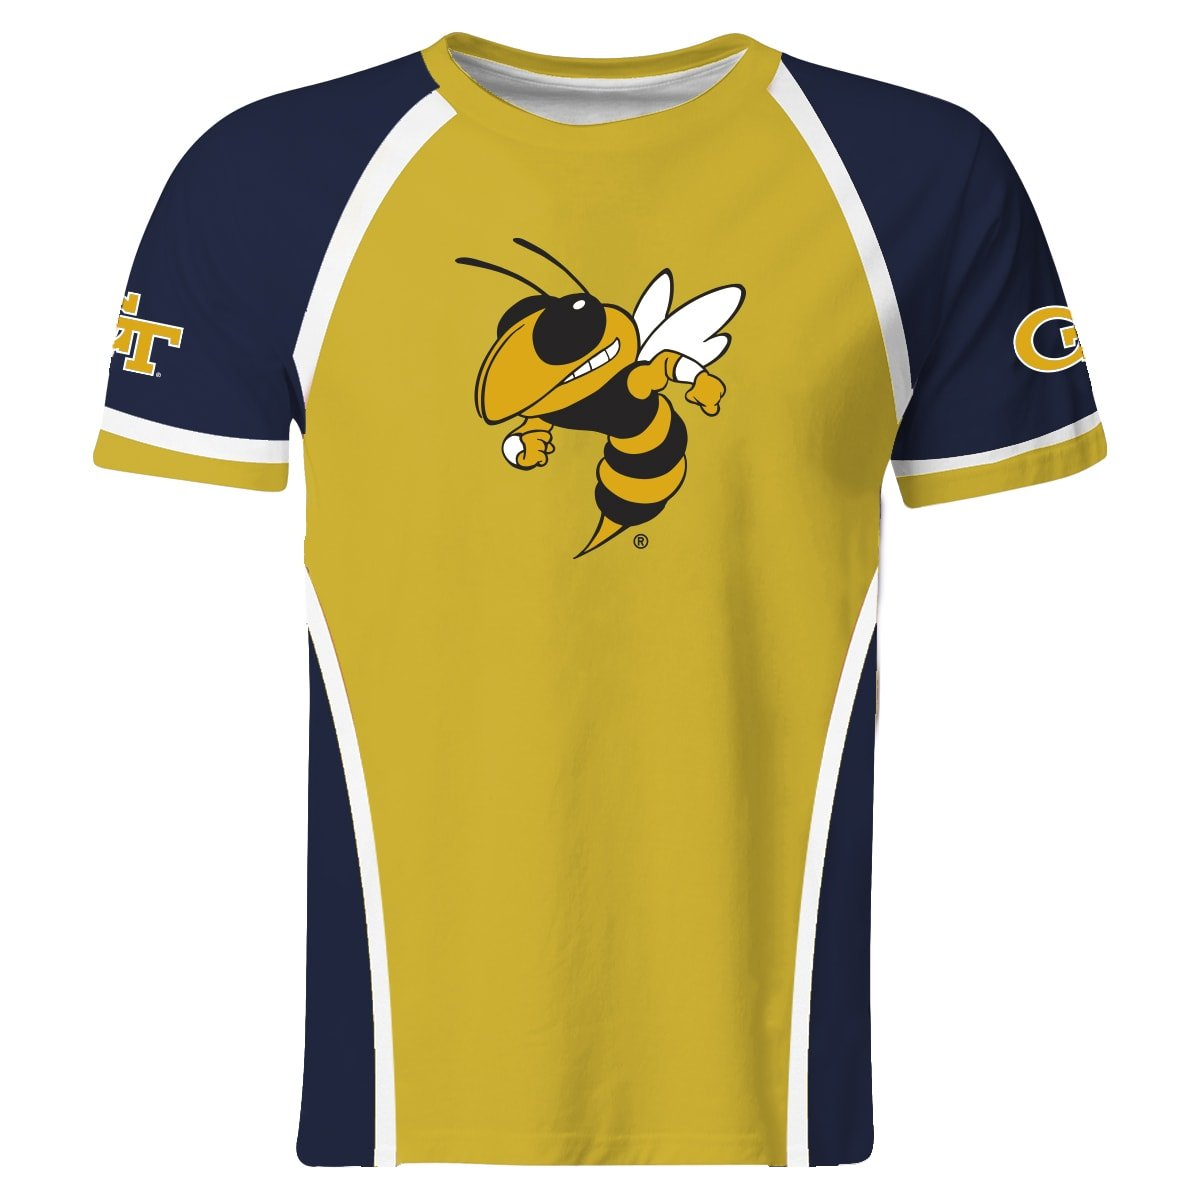 Vive La Fete Collegiate GA Tech Yellow Jackets Yellow and Navy Short Sleeve Boys Tee Shirt by Vive La Fete Collegiate